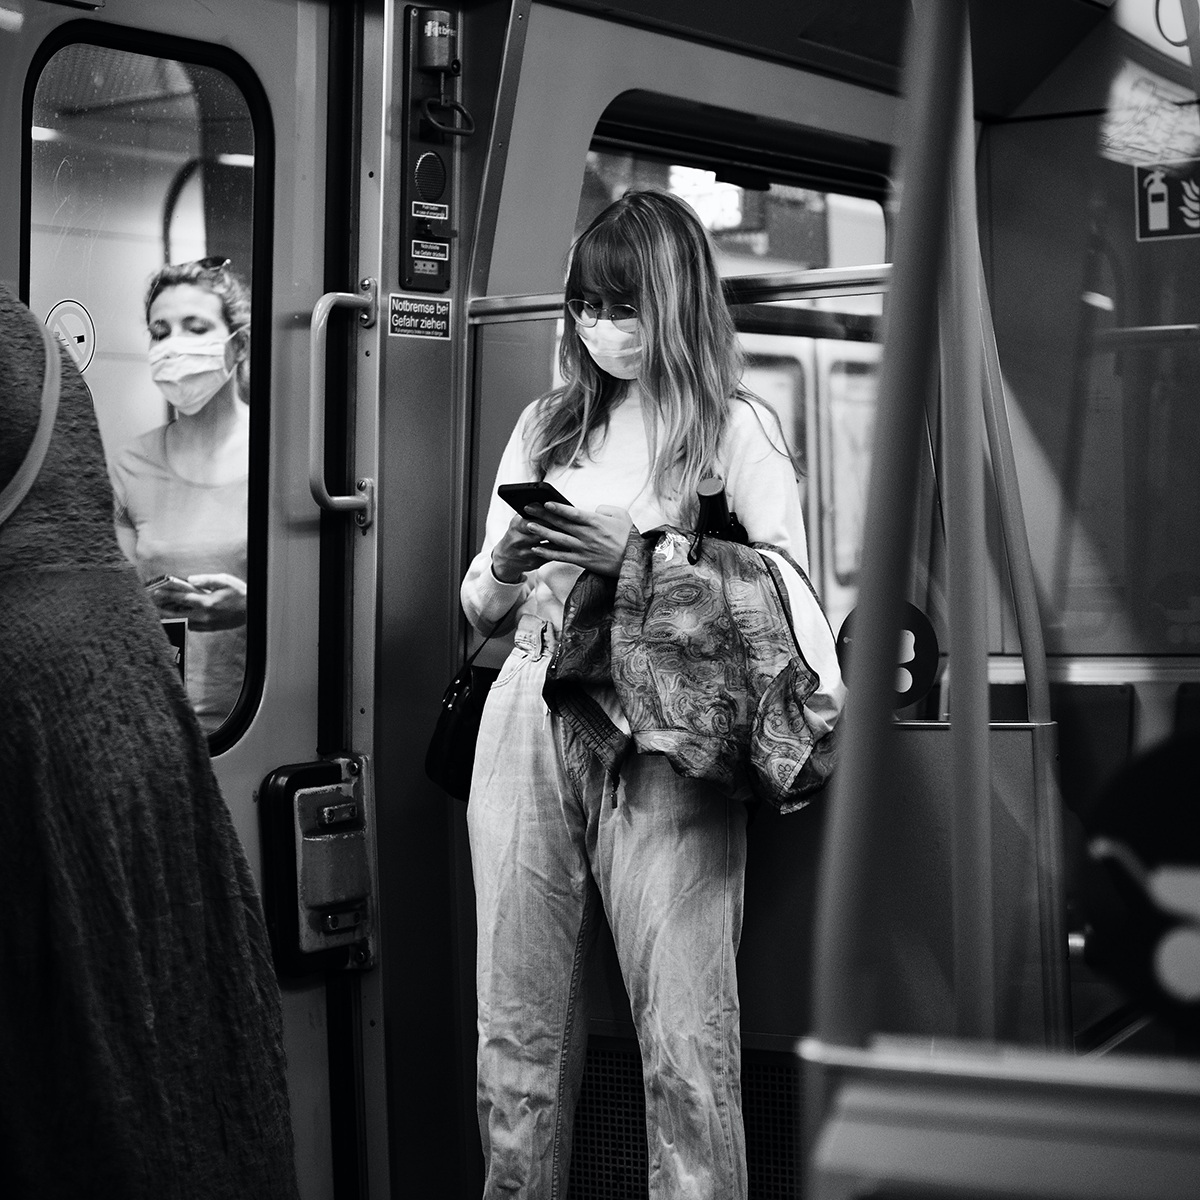 Woman with long hair, wearing a mask and texting while standing on subway car.